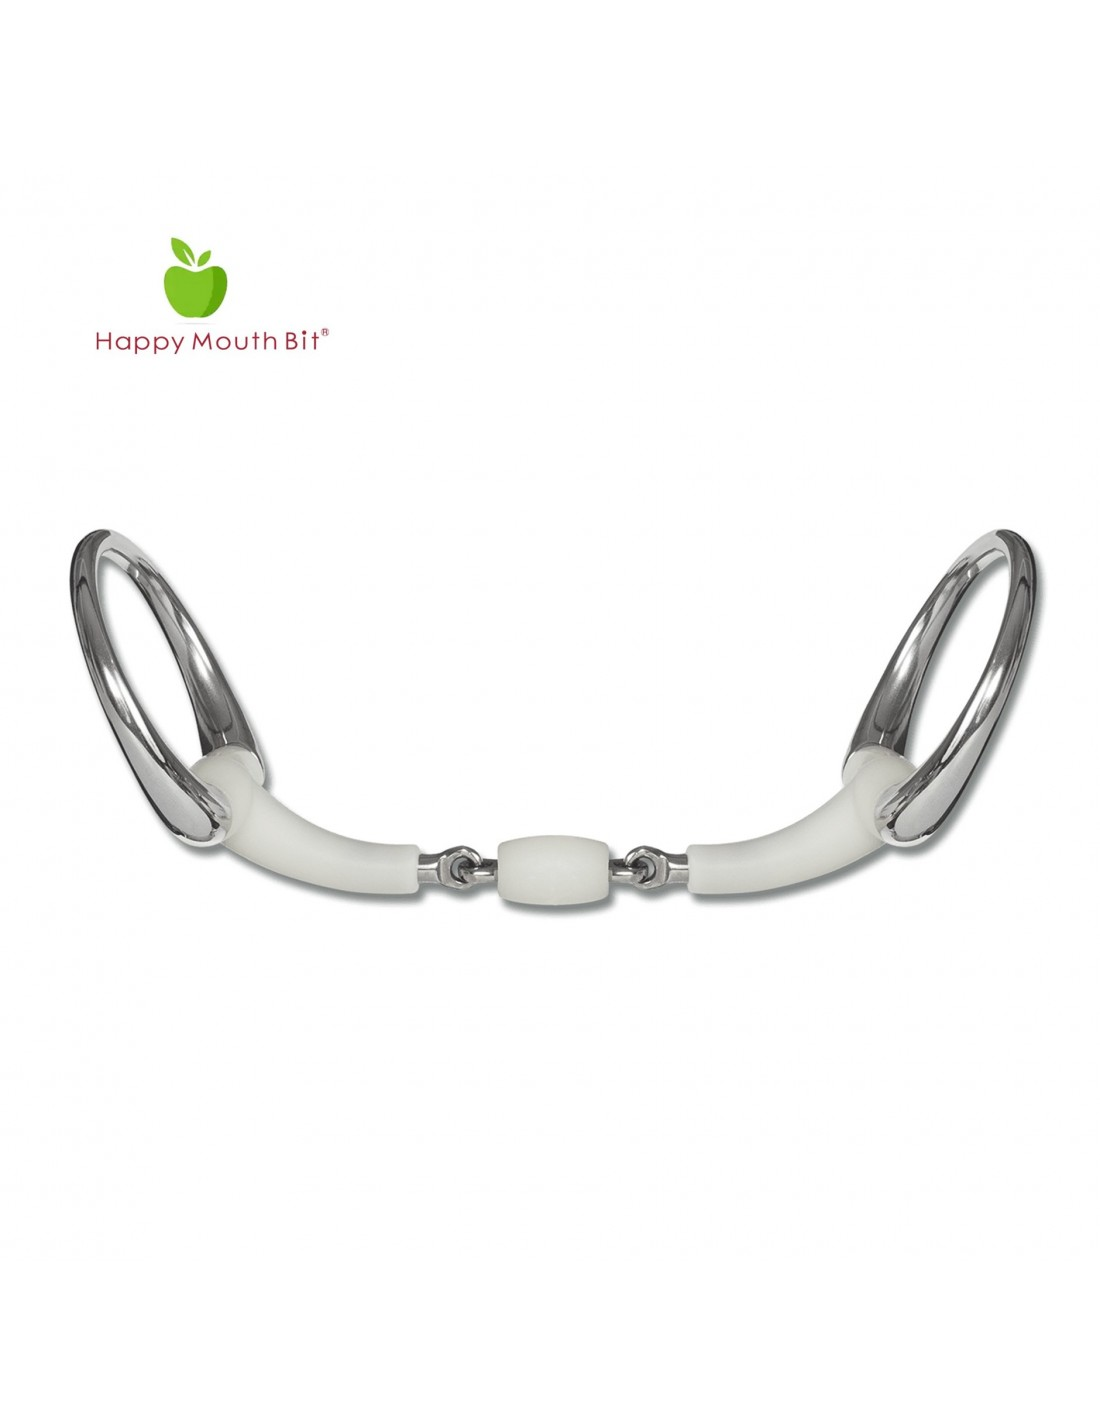 ALL SIZES NEW Flexi Apple Double Jointed Eggbutt Snaffle Bit FREE DELIVERY